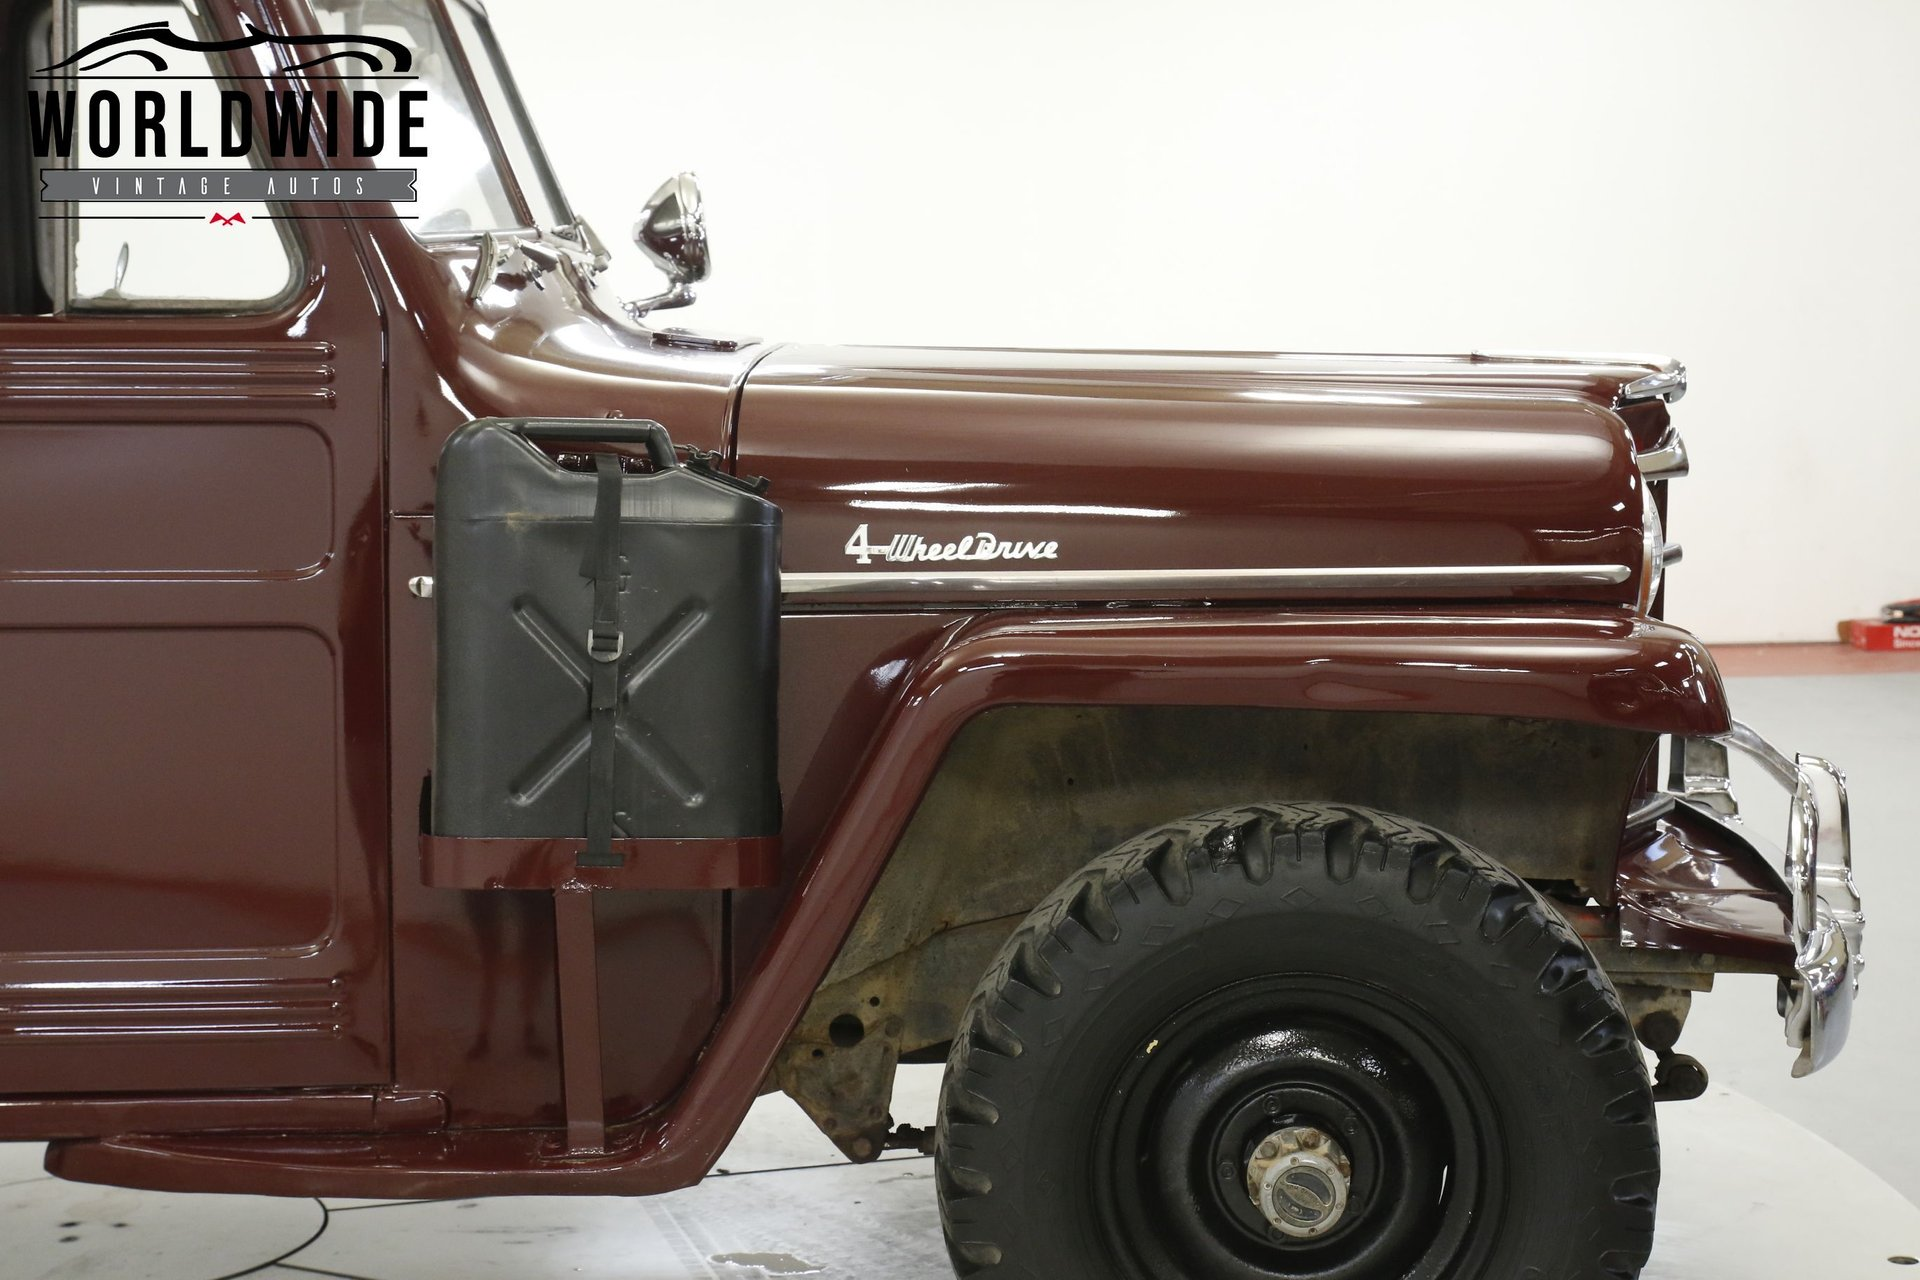 1952 Willys Jeep